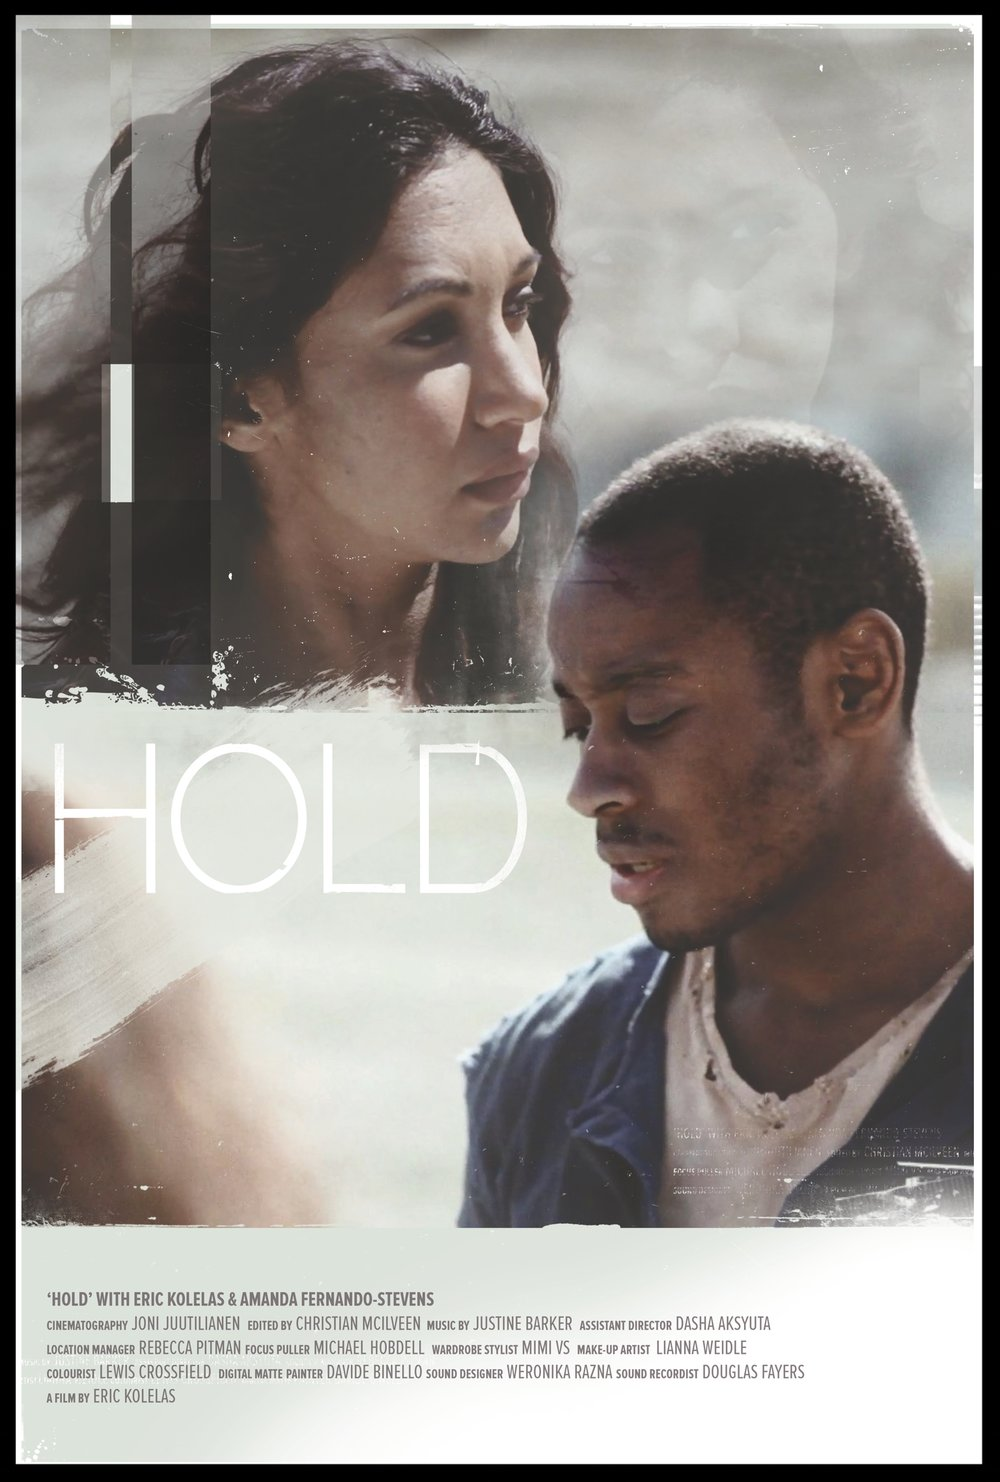 HOLD - 7mins |Drama/Sci-Fi | UKStuck in his endless loneliness, a man wanders in a post-apocalyptic world... Only to discover he is not alone.